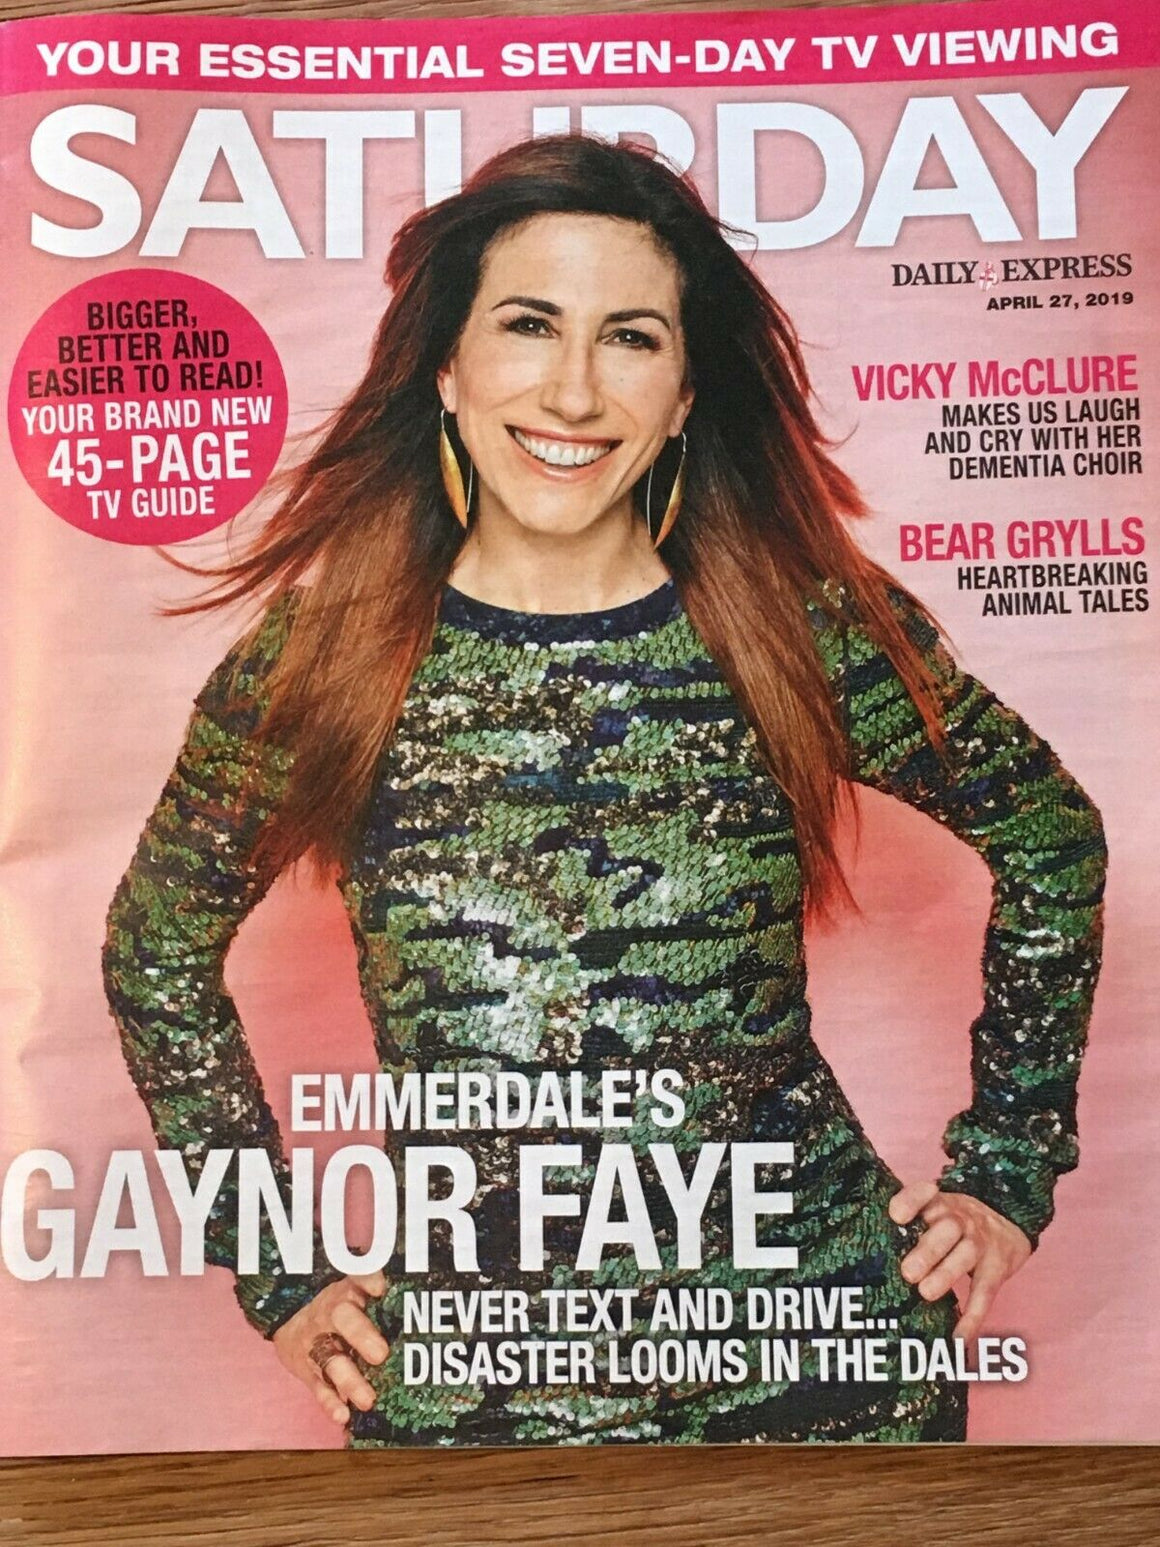 UK SATURDAY Mag 04/2019: GAYNOR FAYE Bruce Hornsby GRATEFUL DEAD Liam Charles